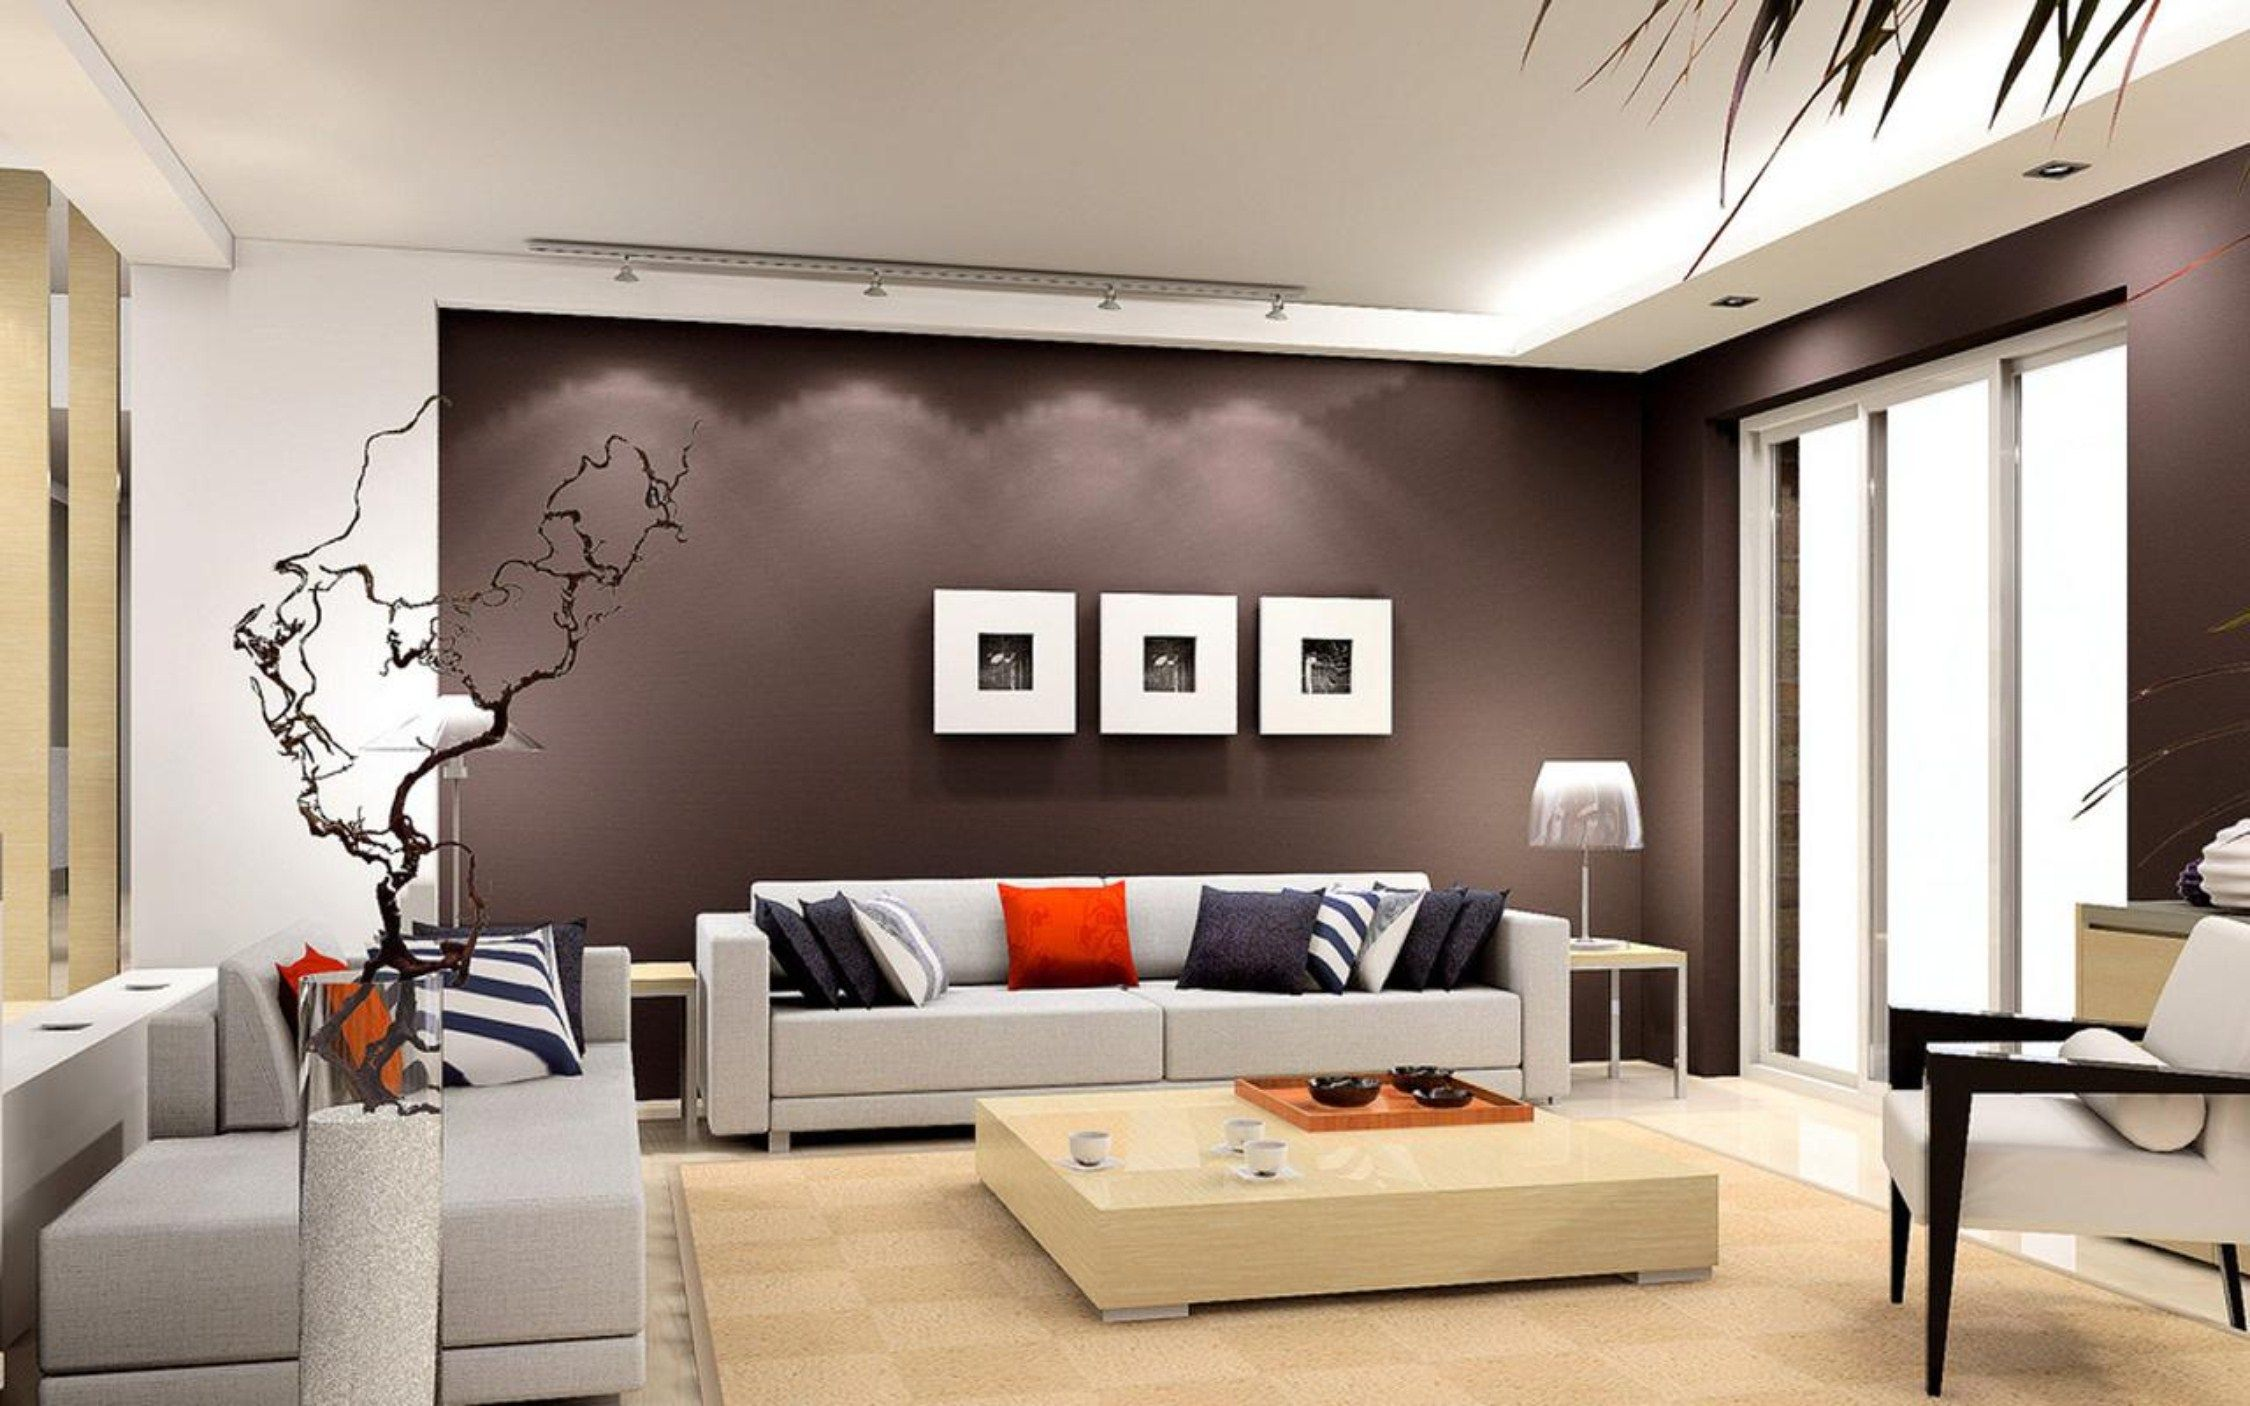 Captivating Living Room Design Recommending Dark Brown Wall Painted Together With Grey Faux Leather Sofa And Cream Square Low Wooden Coffee Table